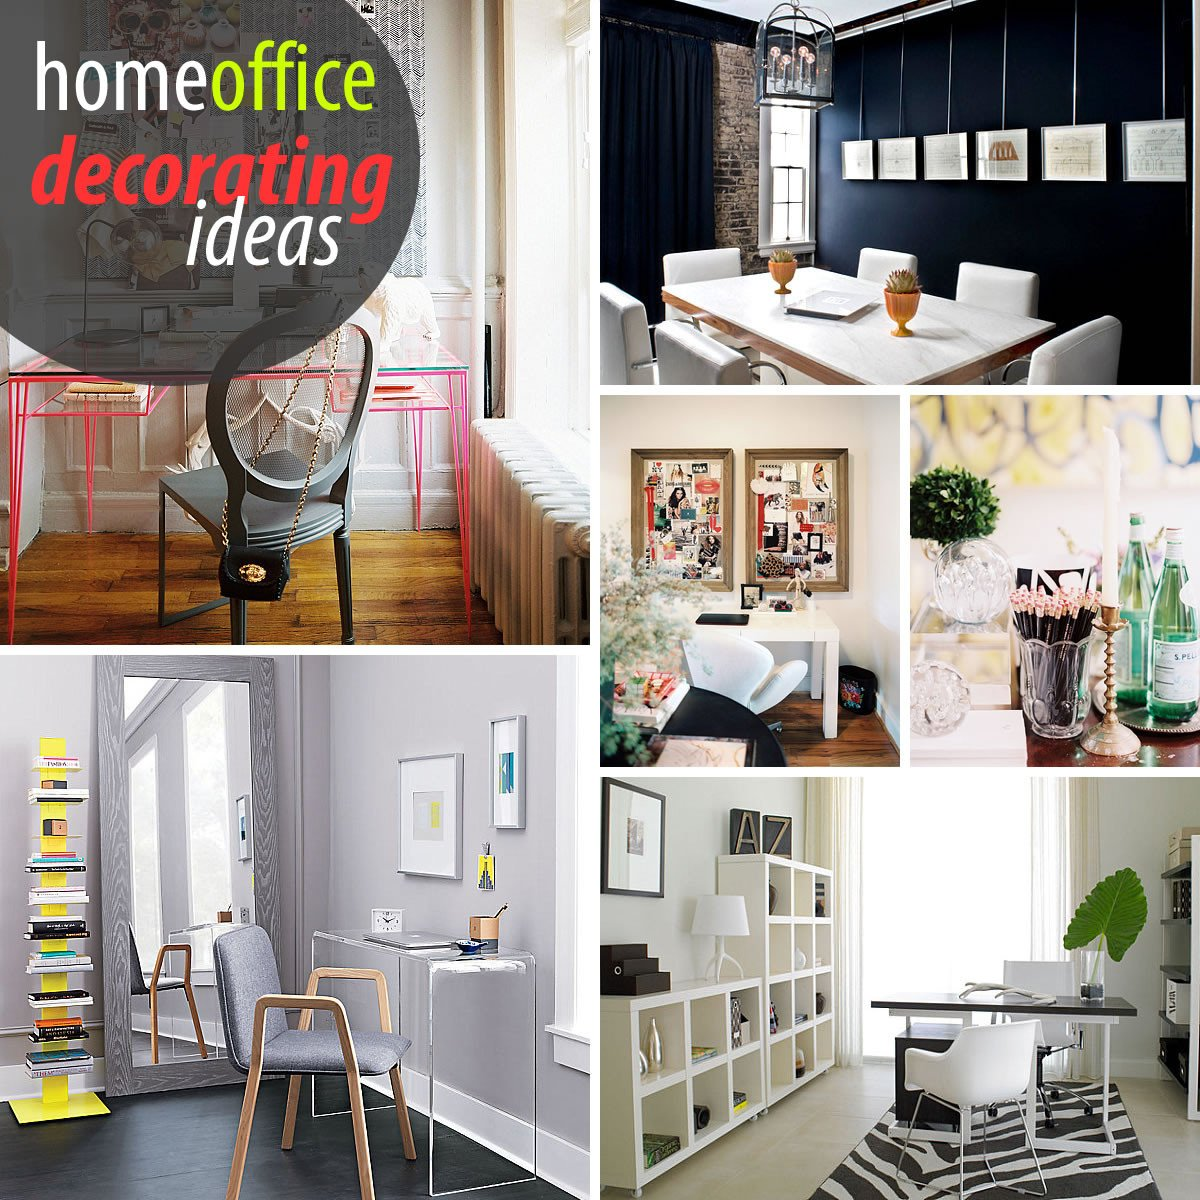 Creative Ideas for Home Decor Awesome Creative Home Fice Decorating Ideas